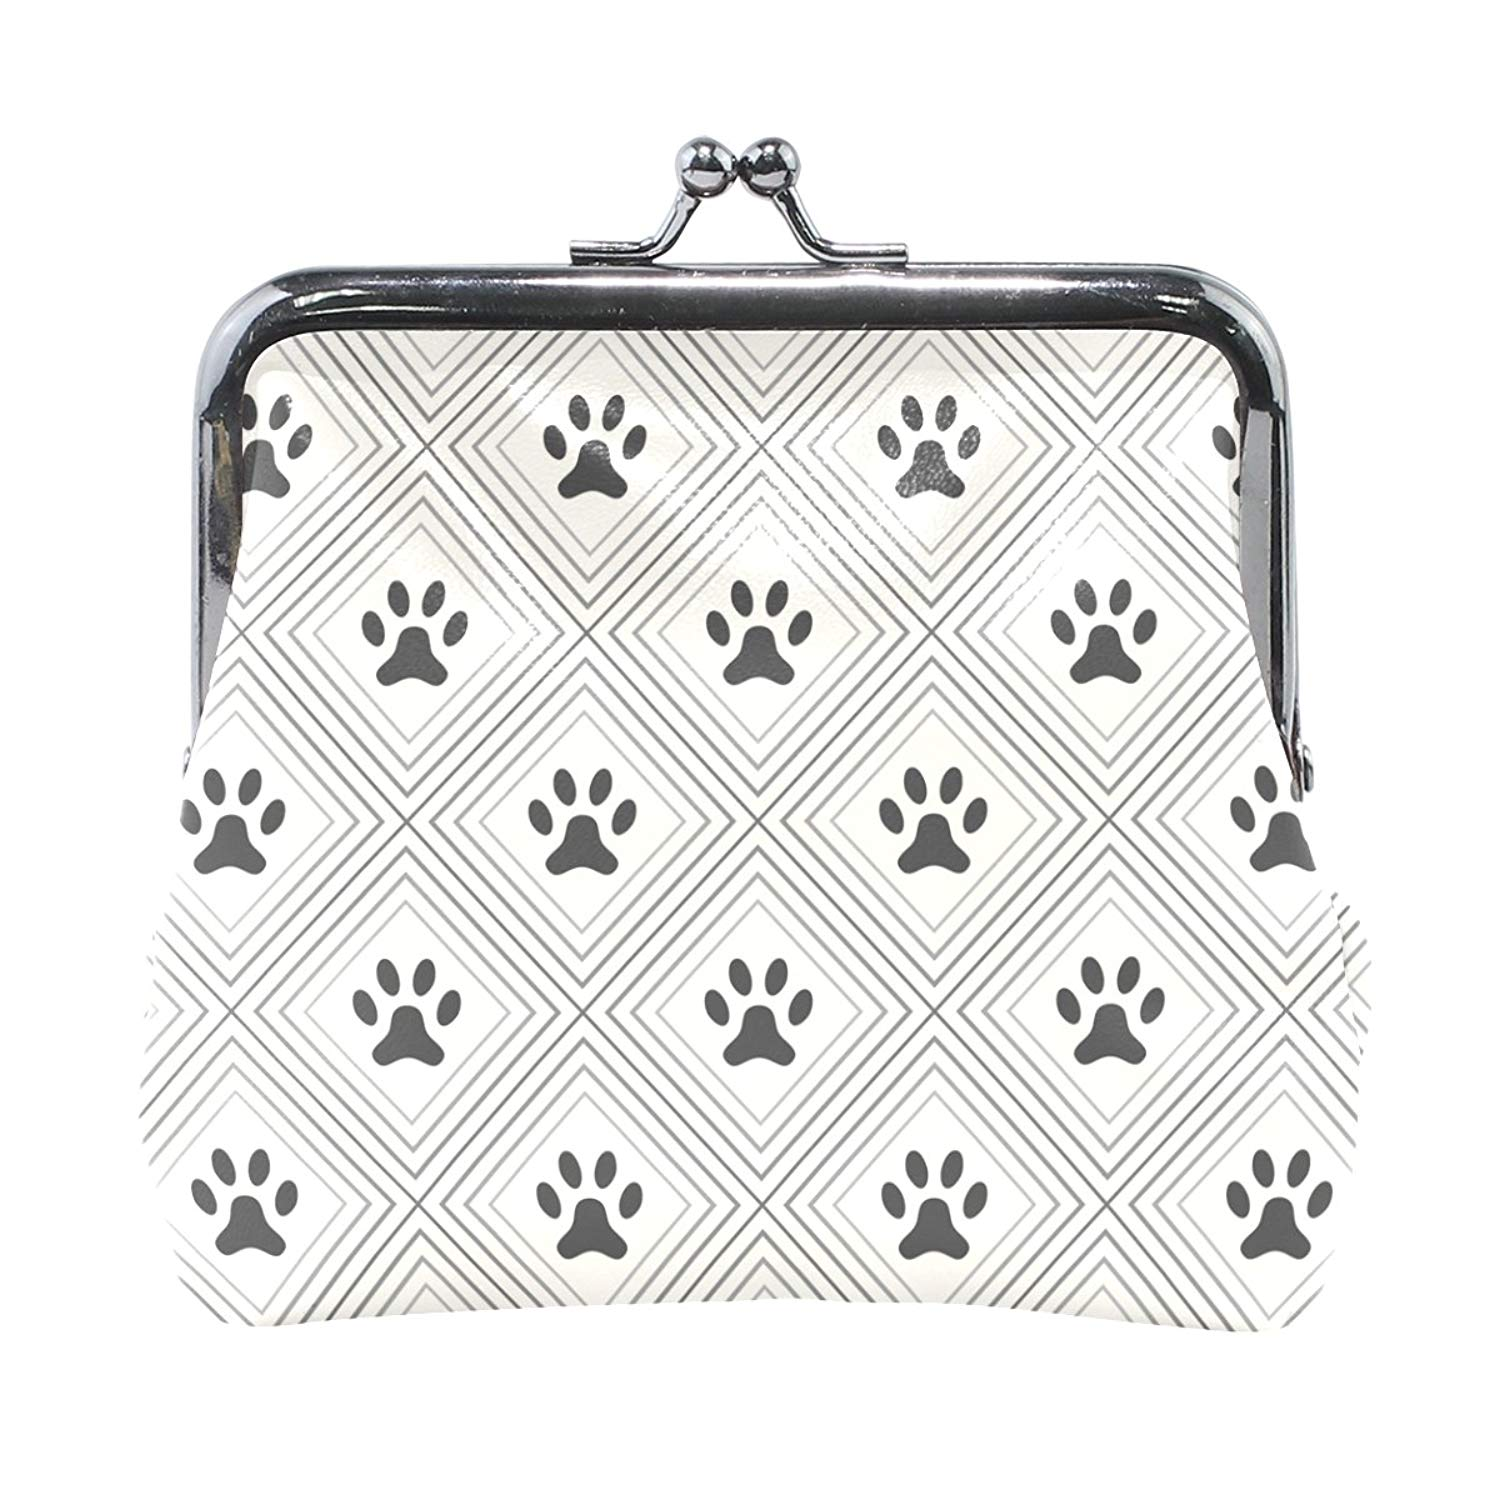 c4a005cf7c6b Cheap Purse Dogs, find Purse Dogs deals on line at Alibaba.com